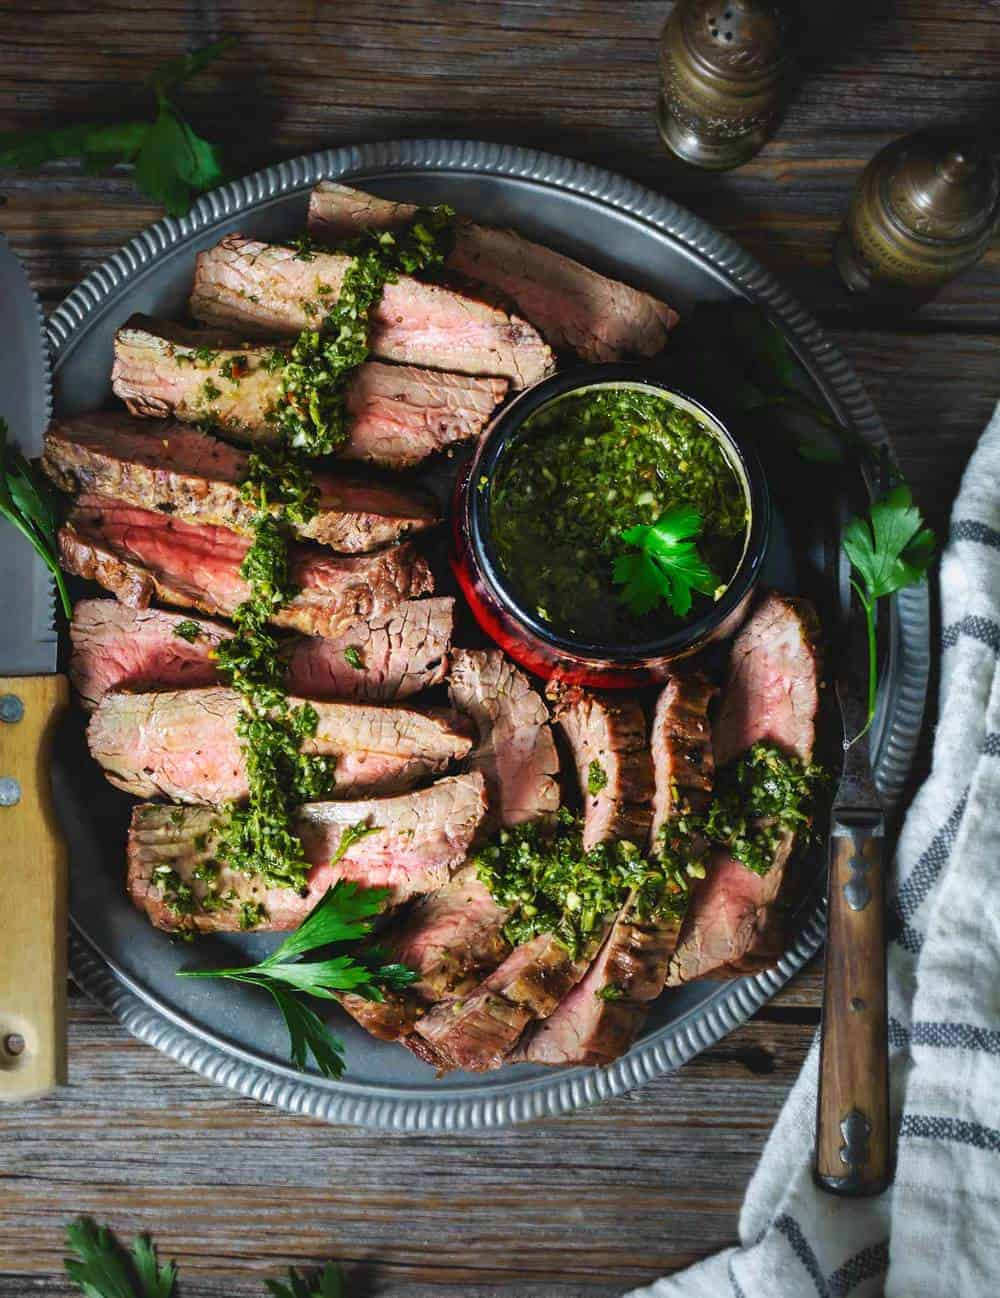 Slices of grilled steak ion a platetopped with chimichurri parsley sauce